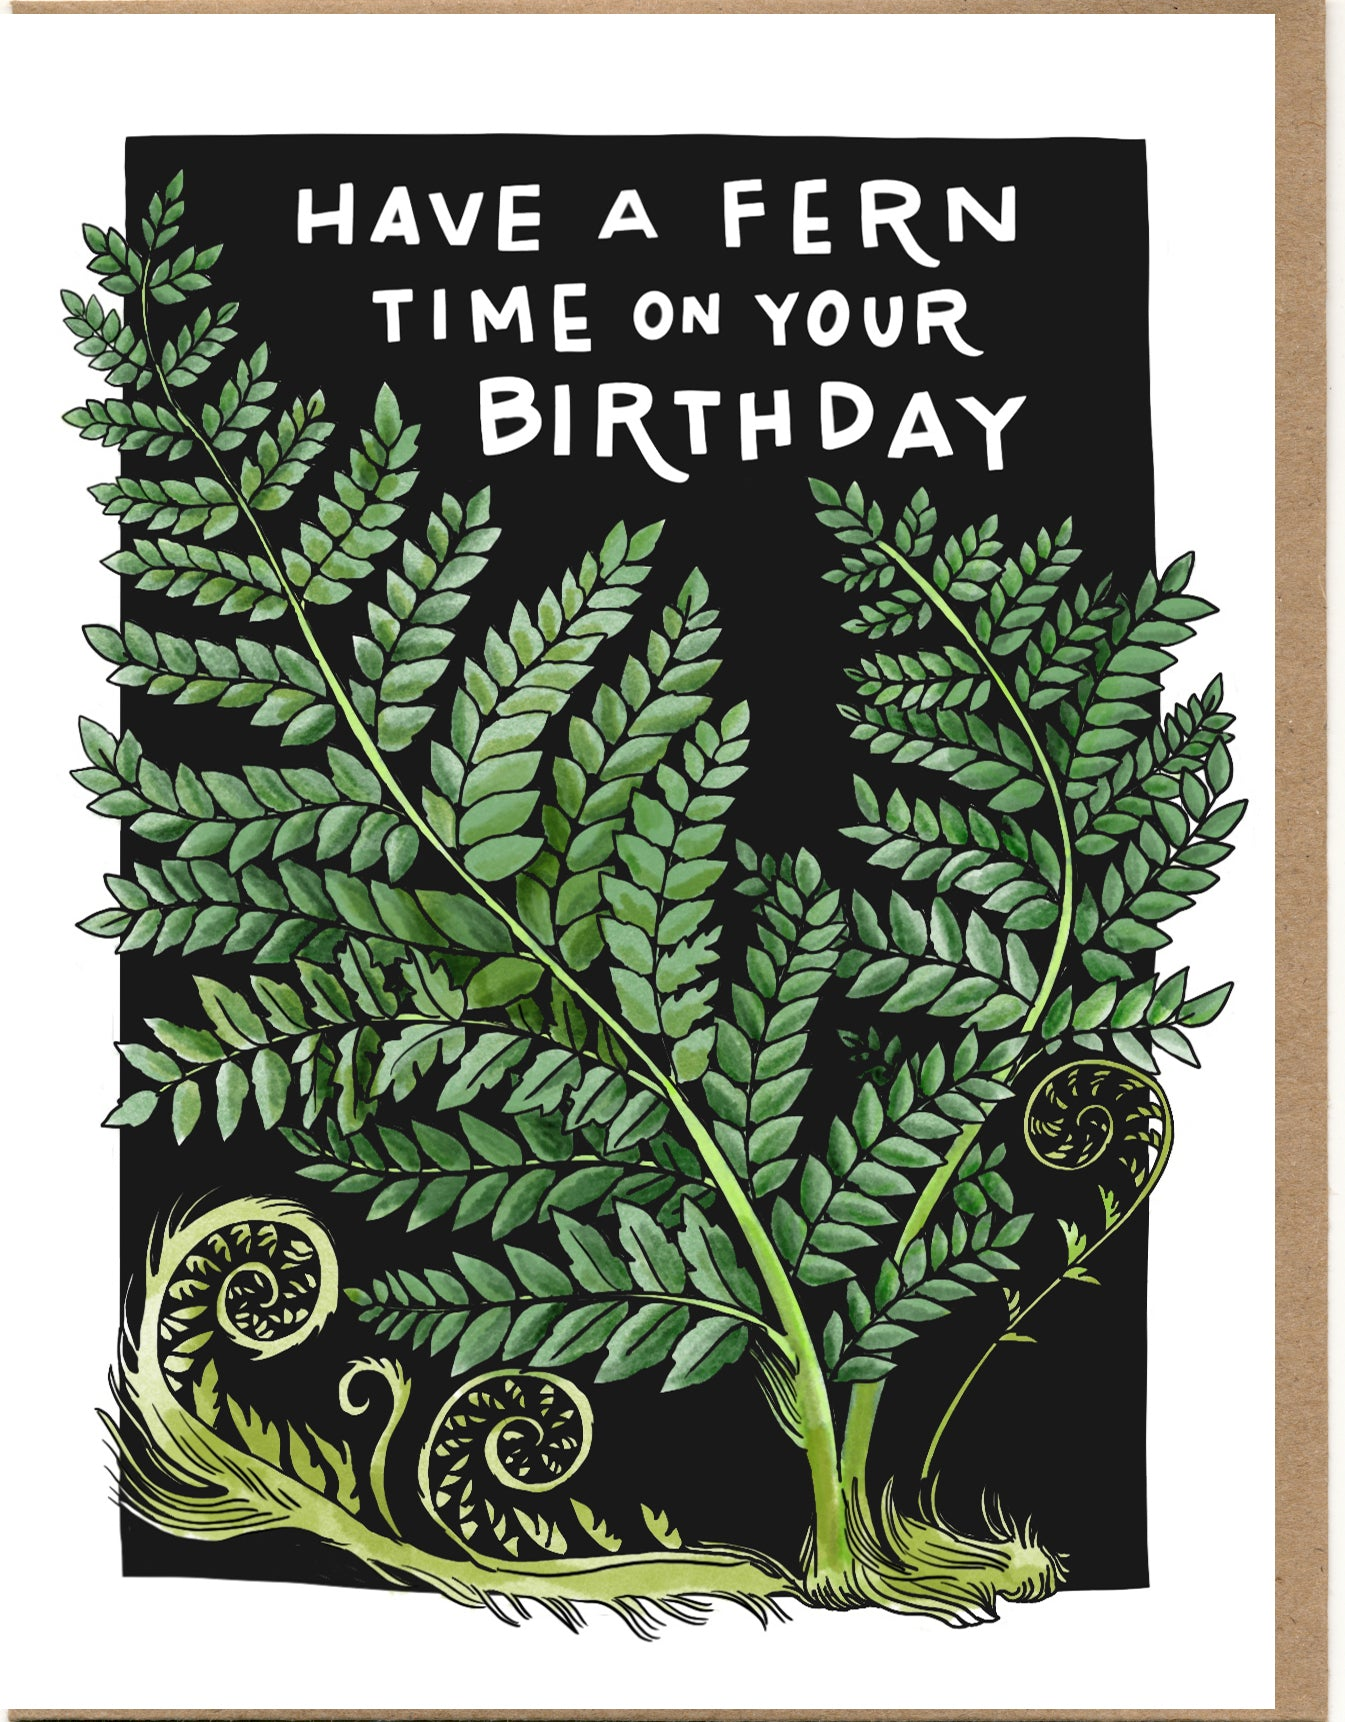 Have A Fern Time On Your Birthday